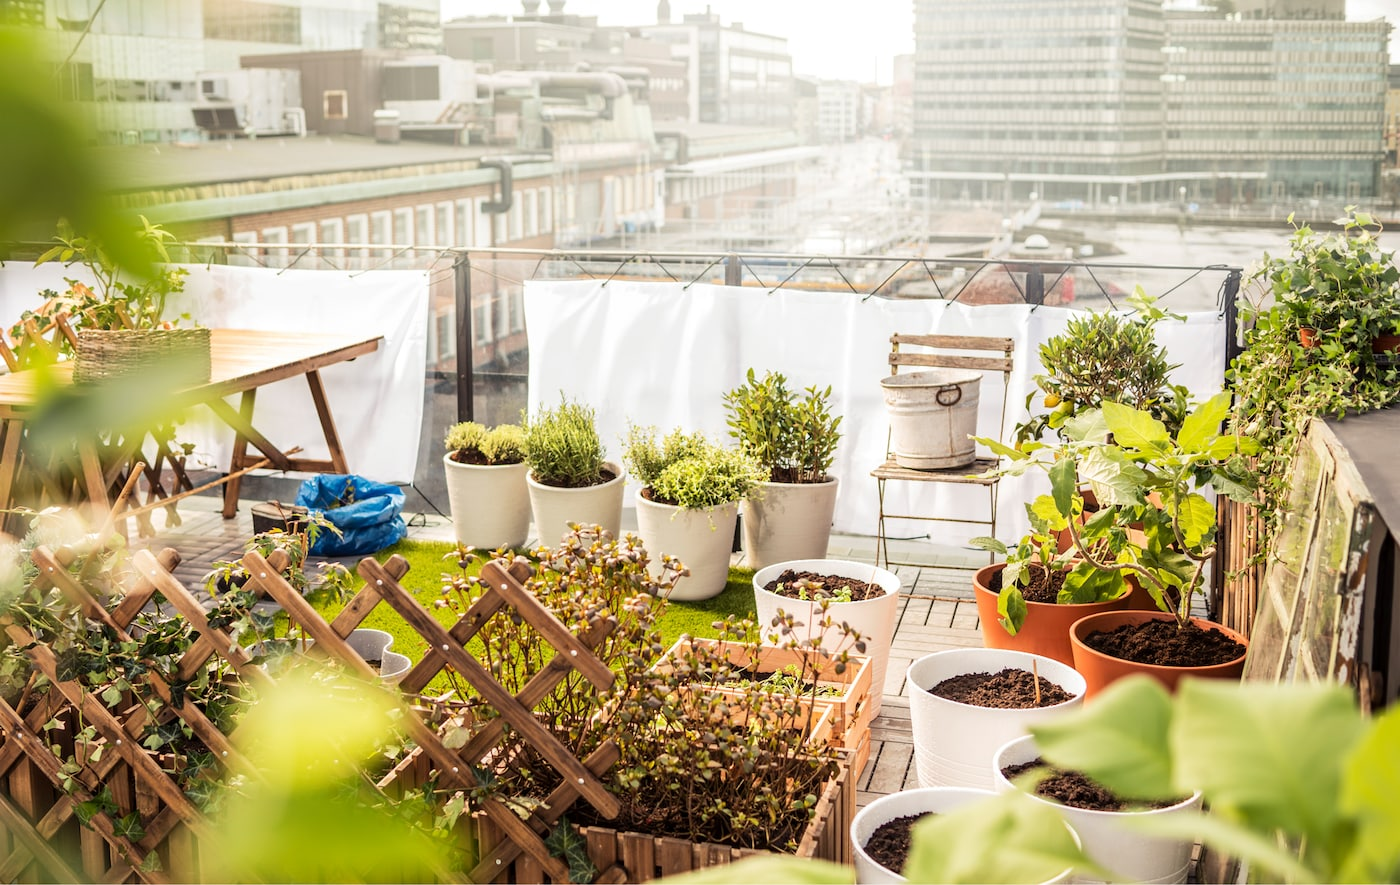 the very doable rooftop garden - ikea